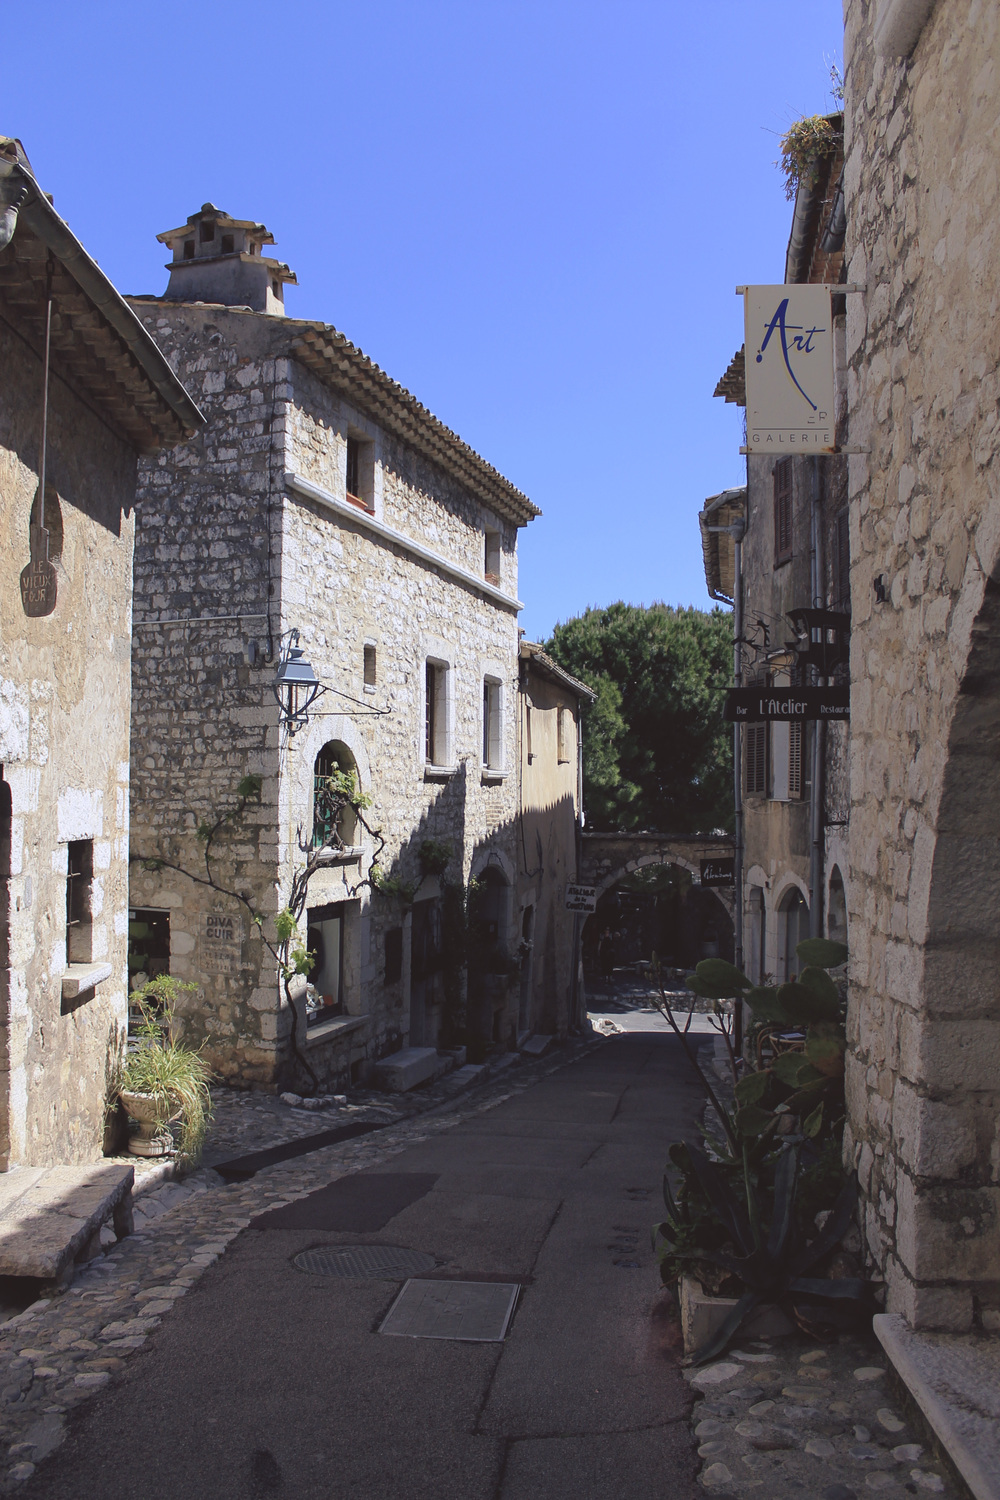 saint paul de vence france street stone cobble